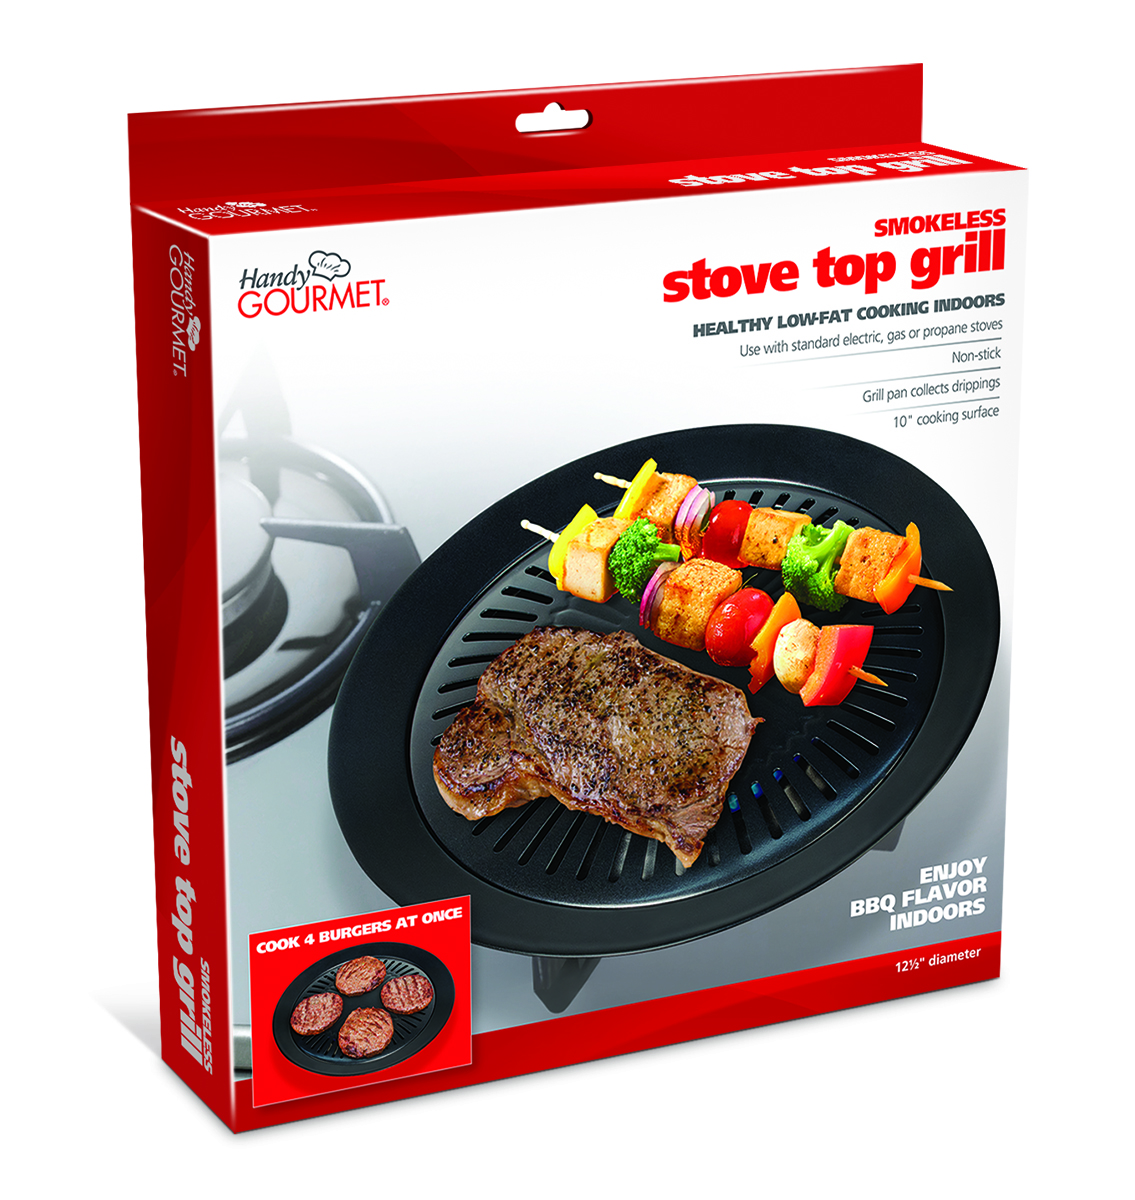 HANDY GOURMET JB7650 STOVE TOP GRILL MEATS AND VEGETABLES